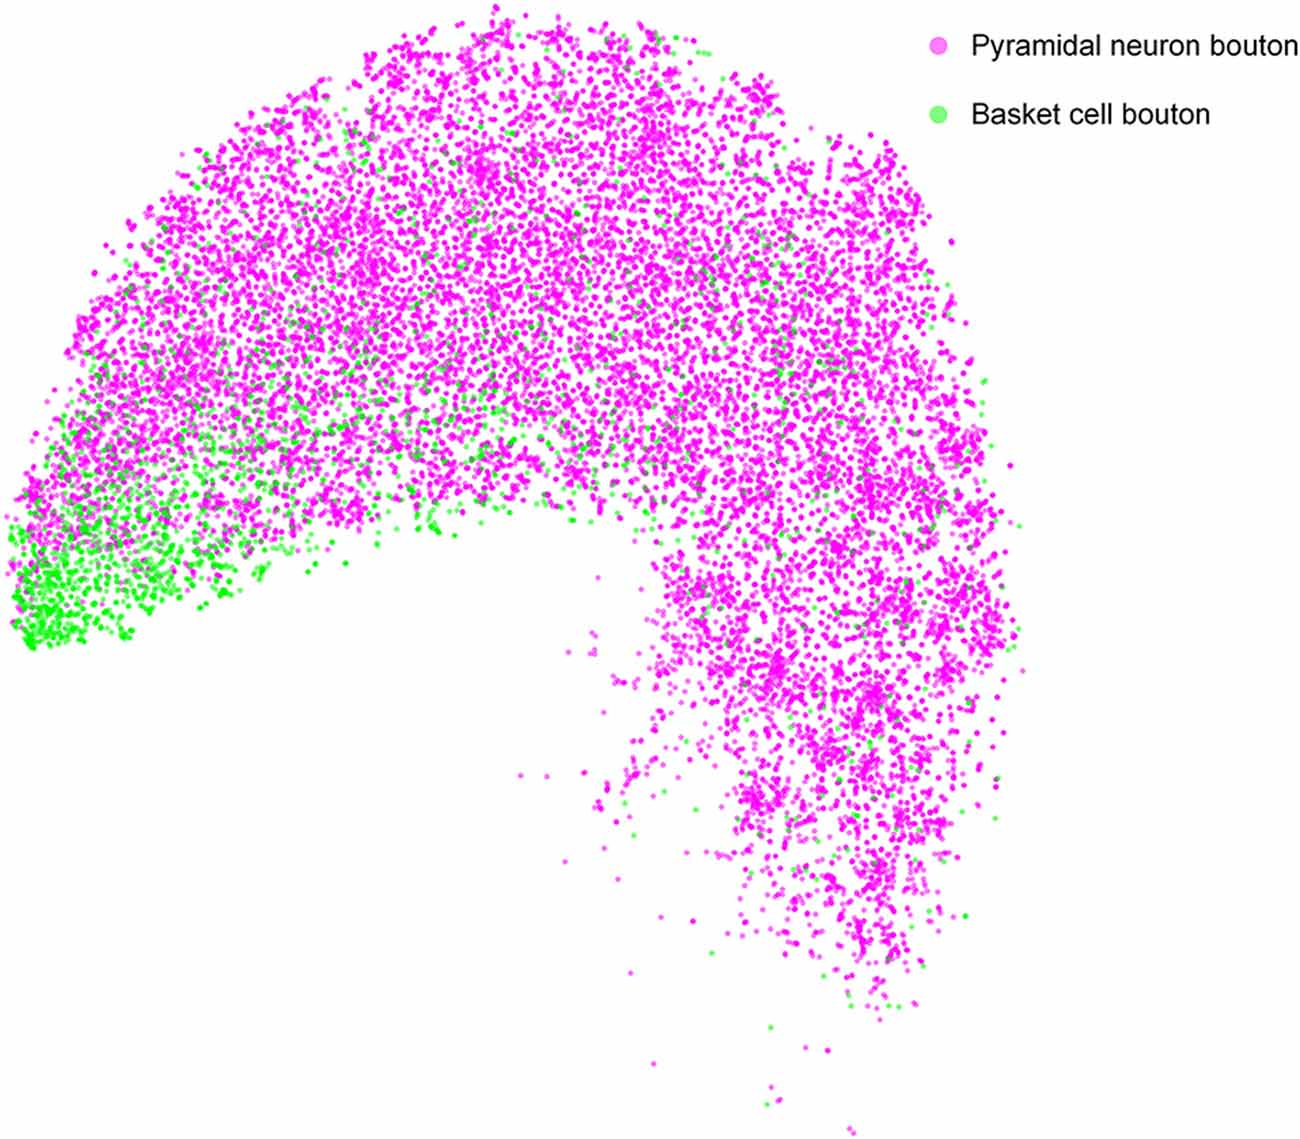 Frontiers | DeepBouton: Automated Identification of Single